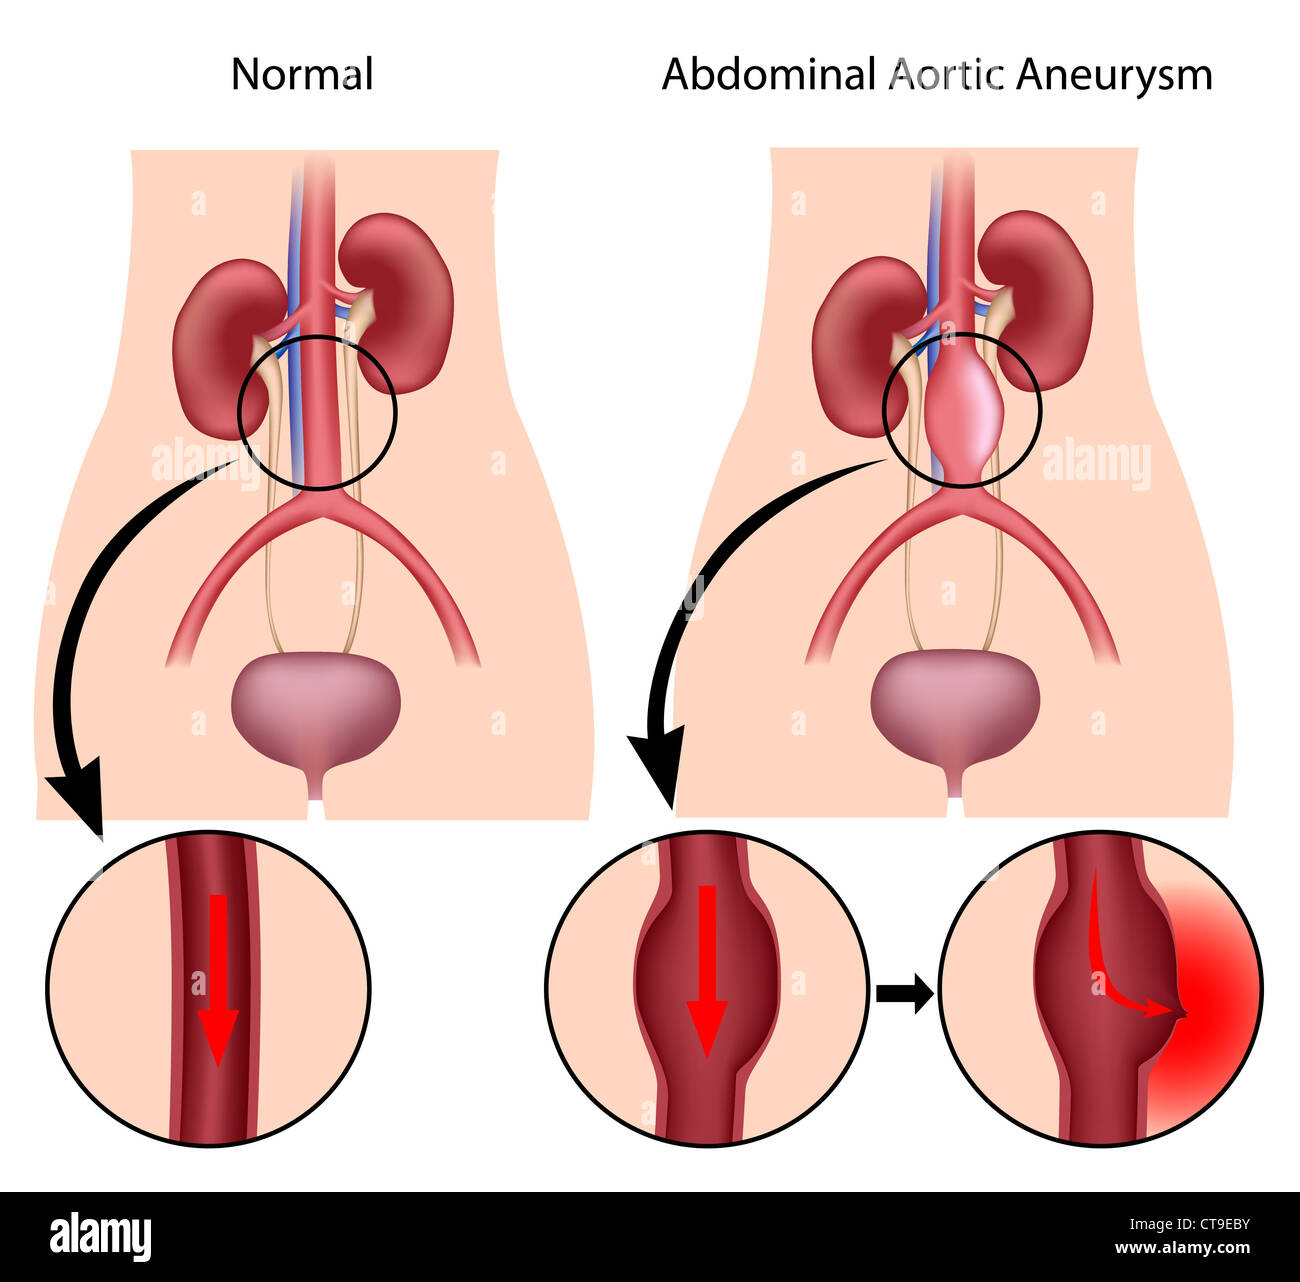 Abdominal aortic aneurysm - Stock Image